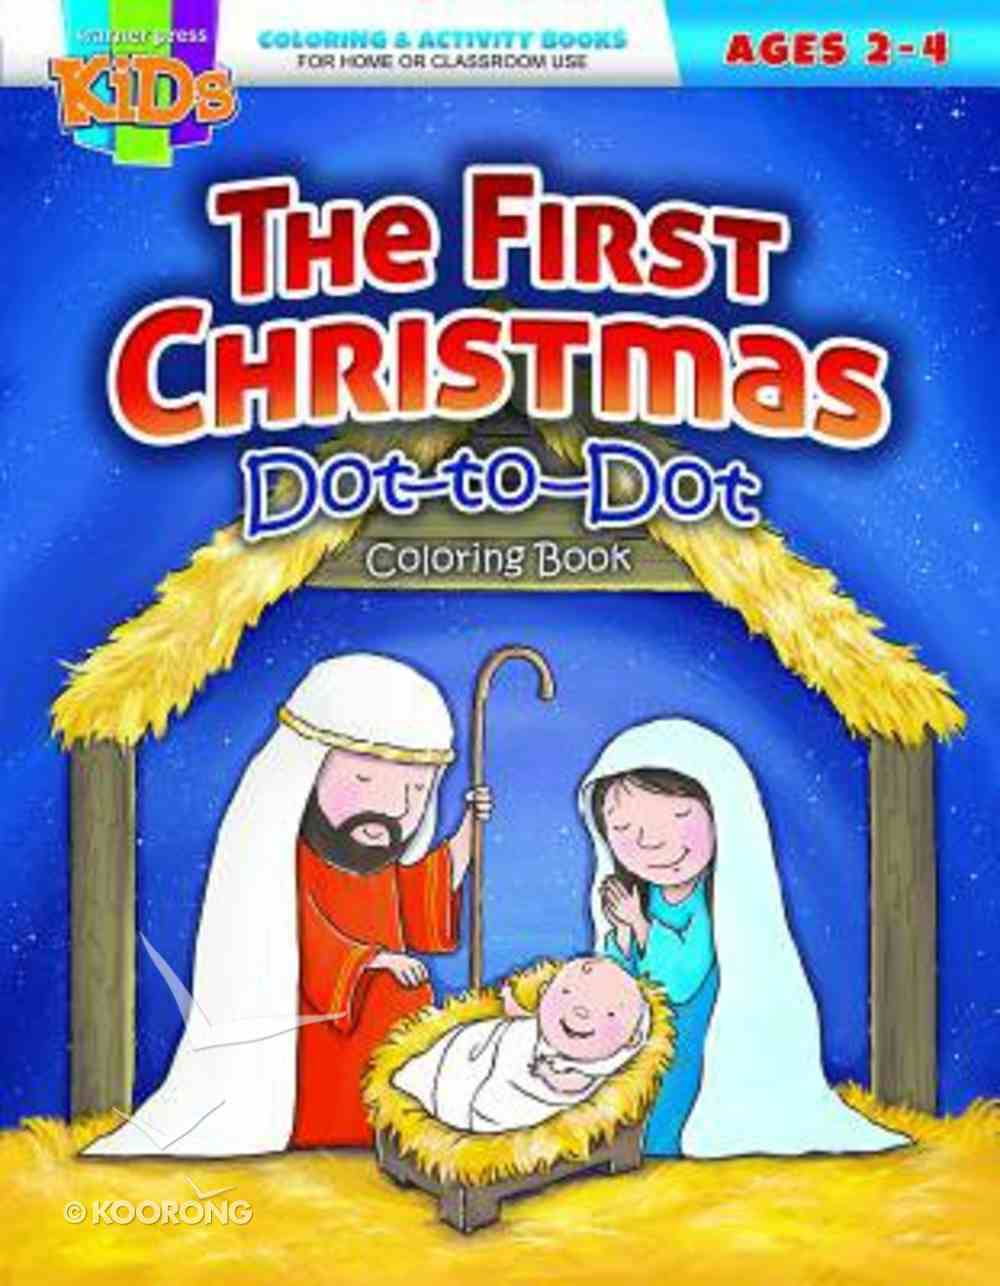 The First Christmas (Ages 2-4, Reproducible) (Warner Press Colouring/activity Under 5's Series) Paperback